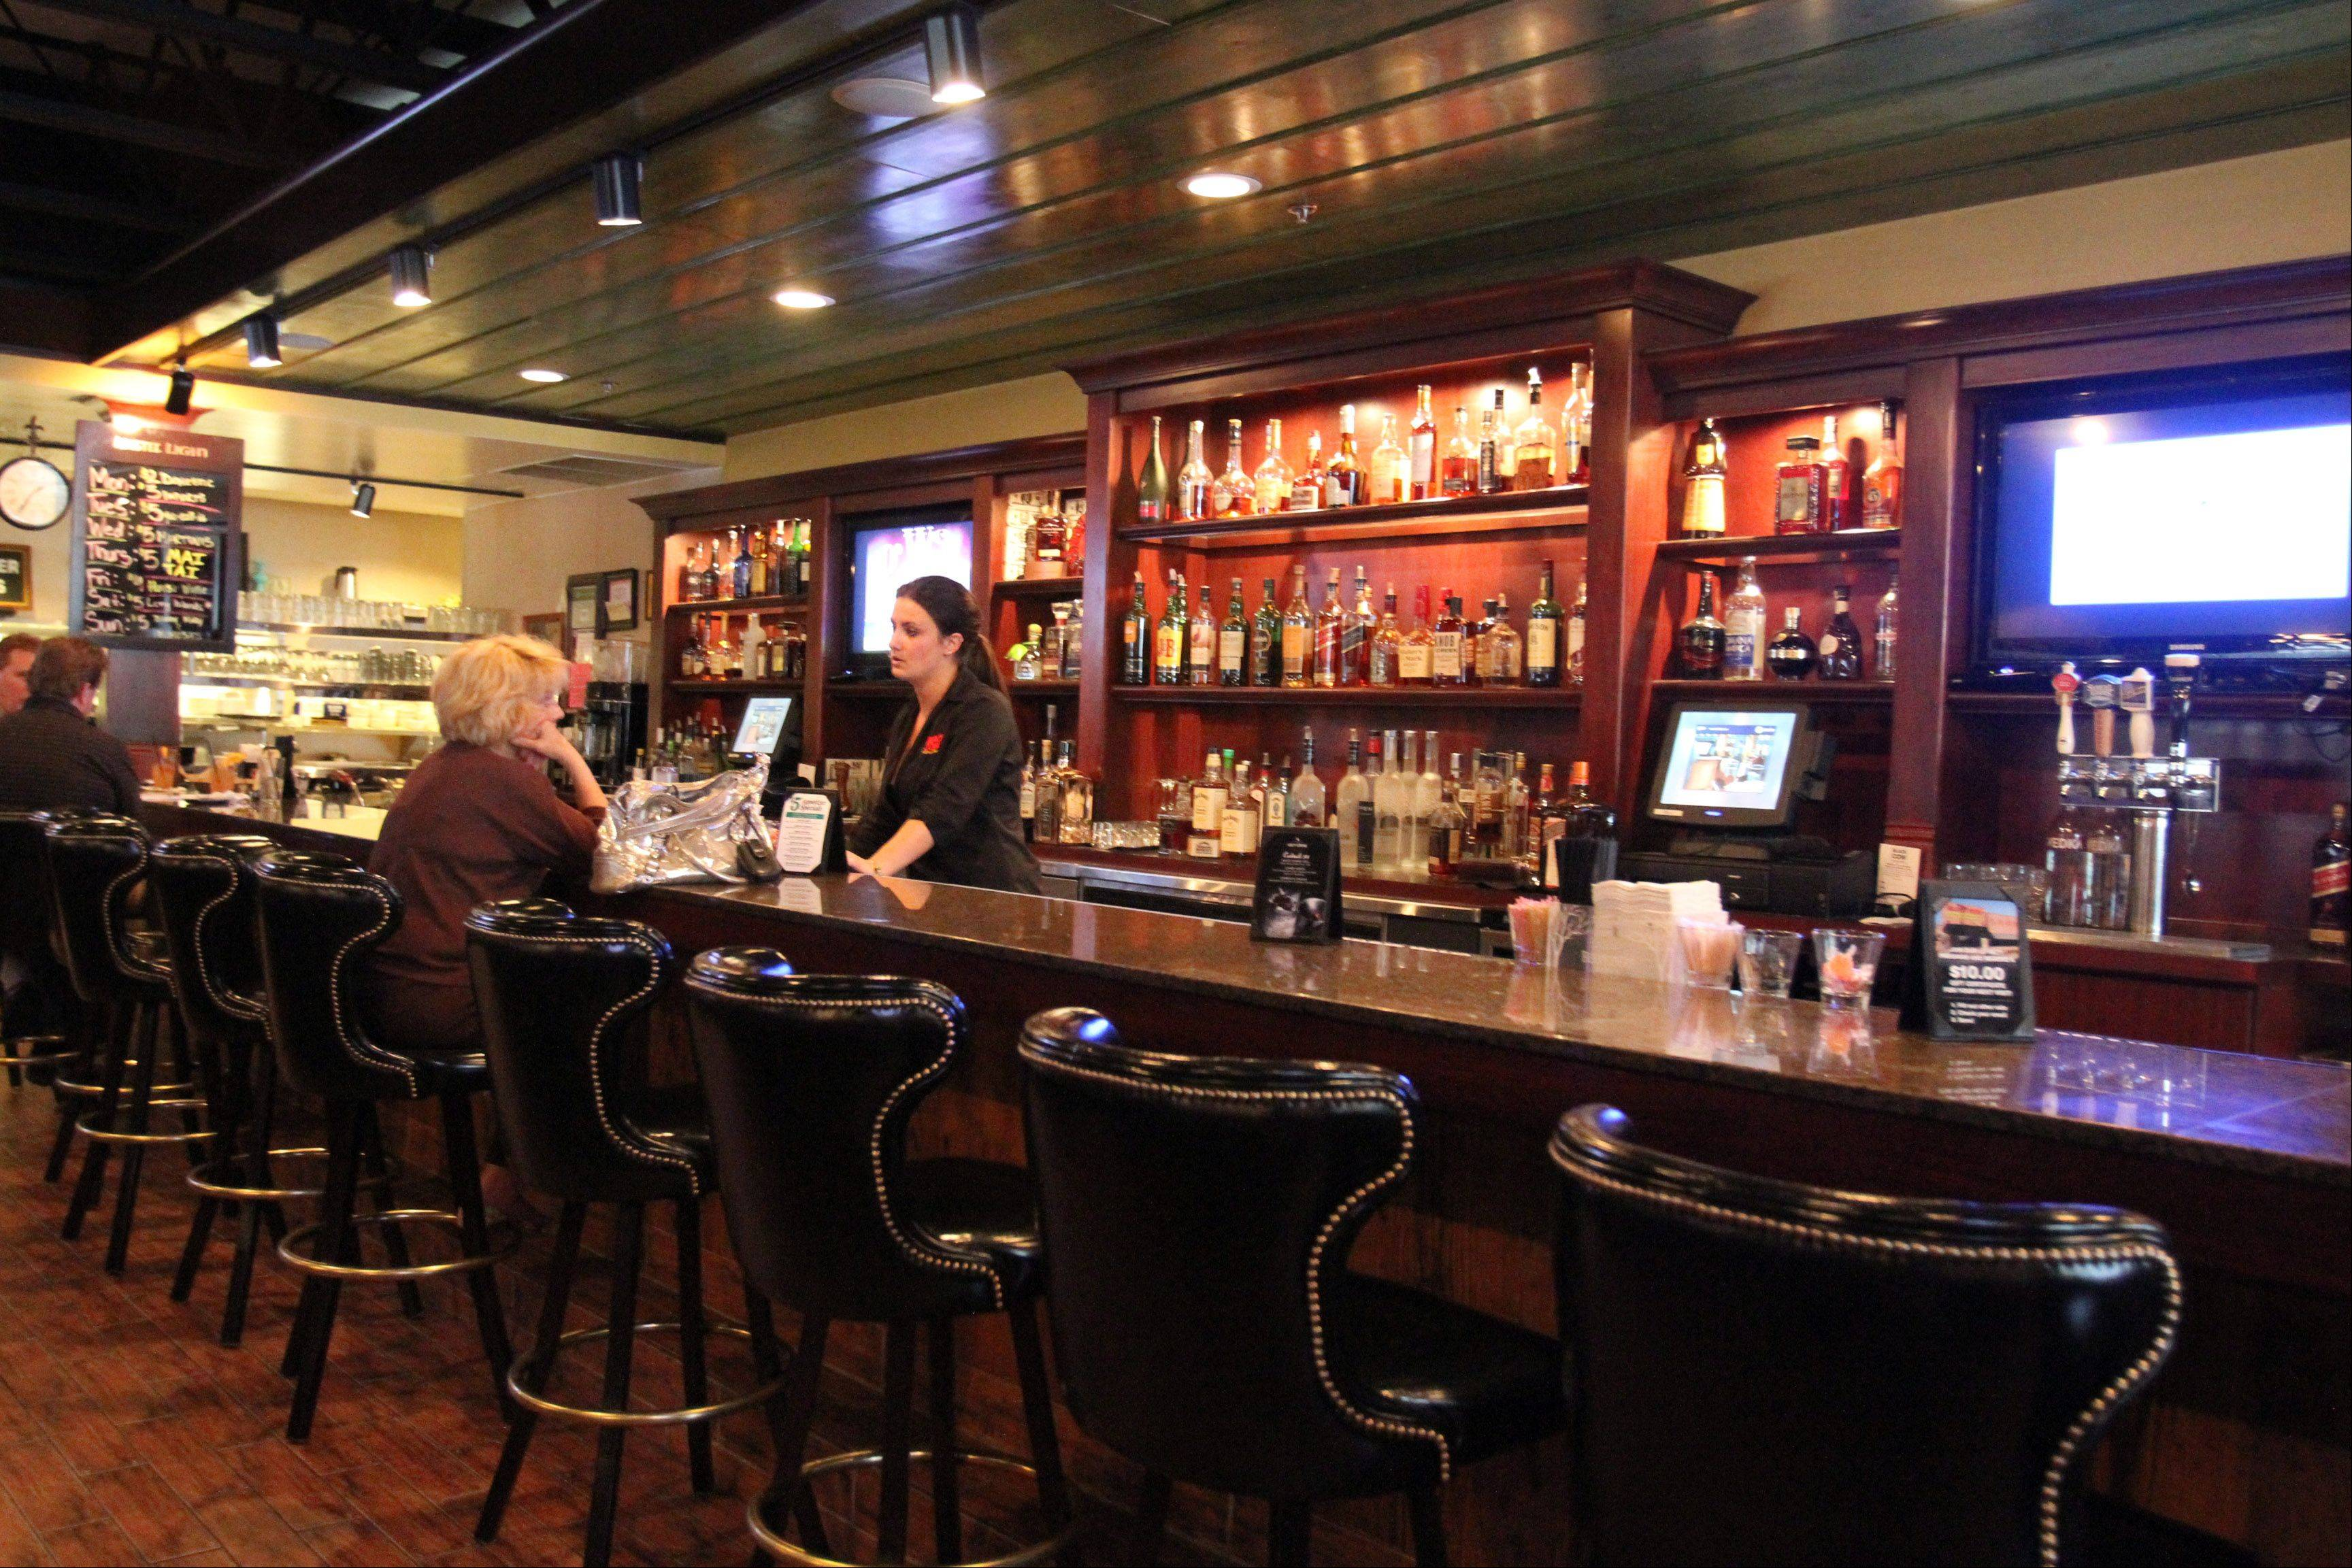 Black Cow Kitchen & Bar in Mount Prospect offers a selection of specialty cocktails.